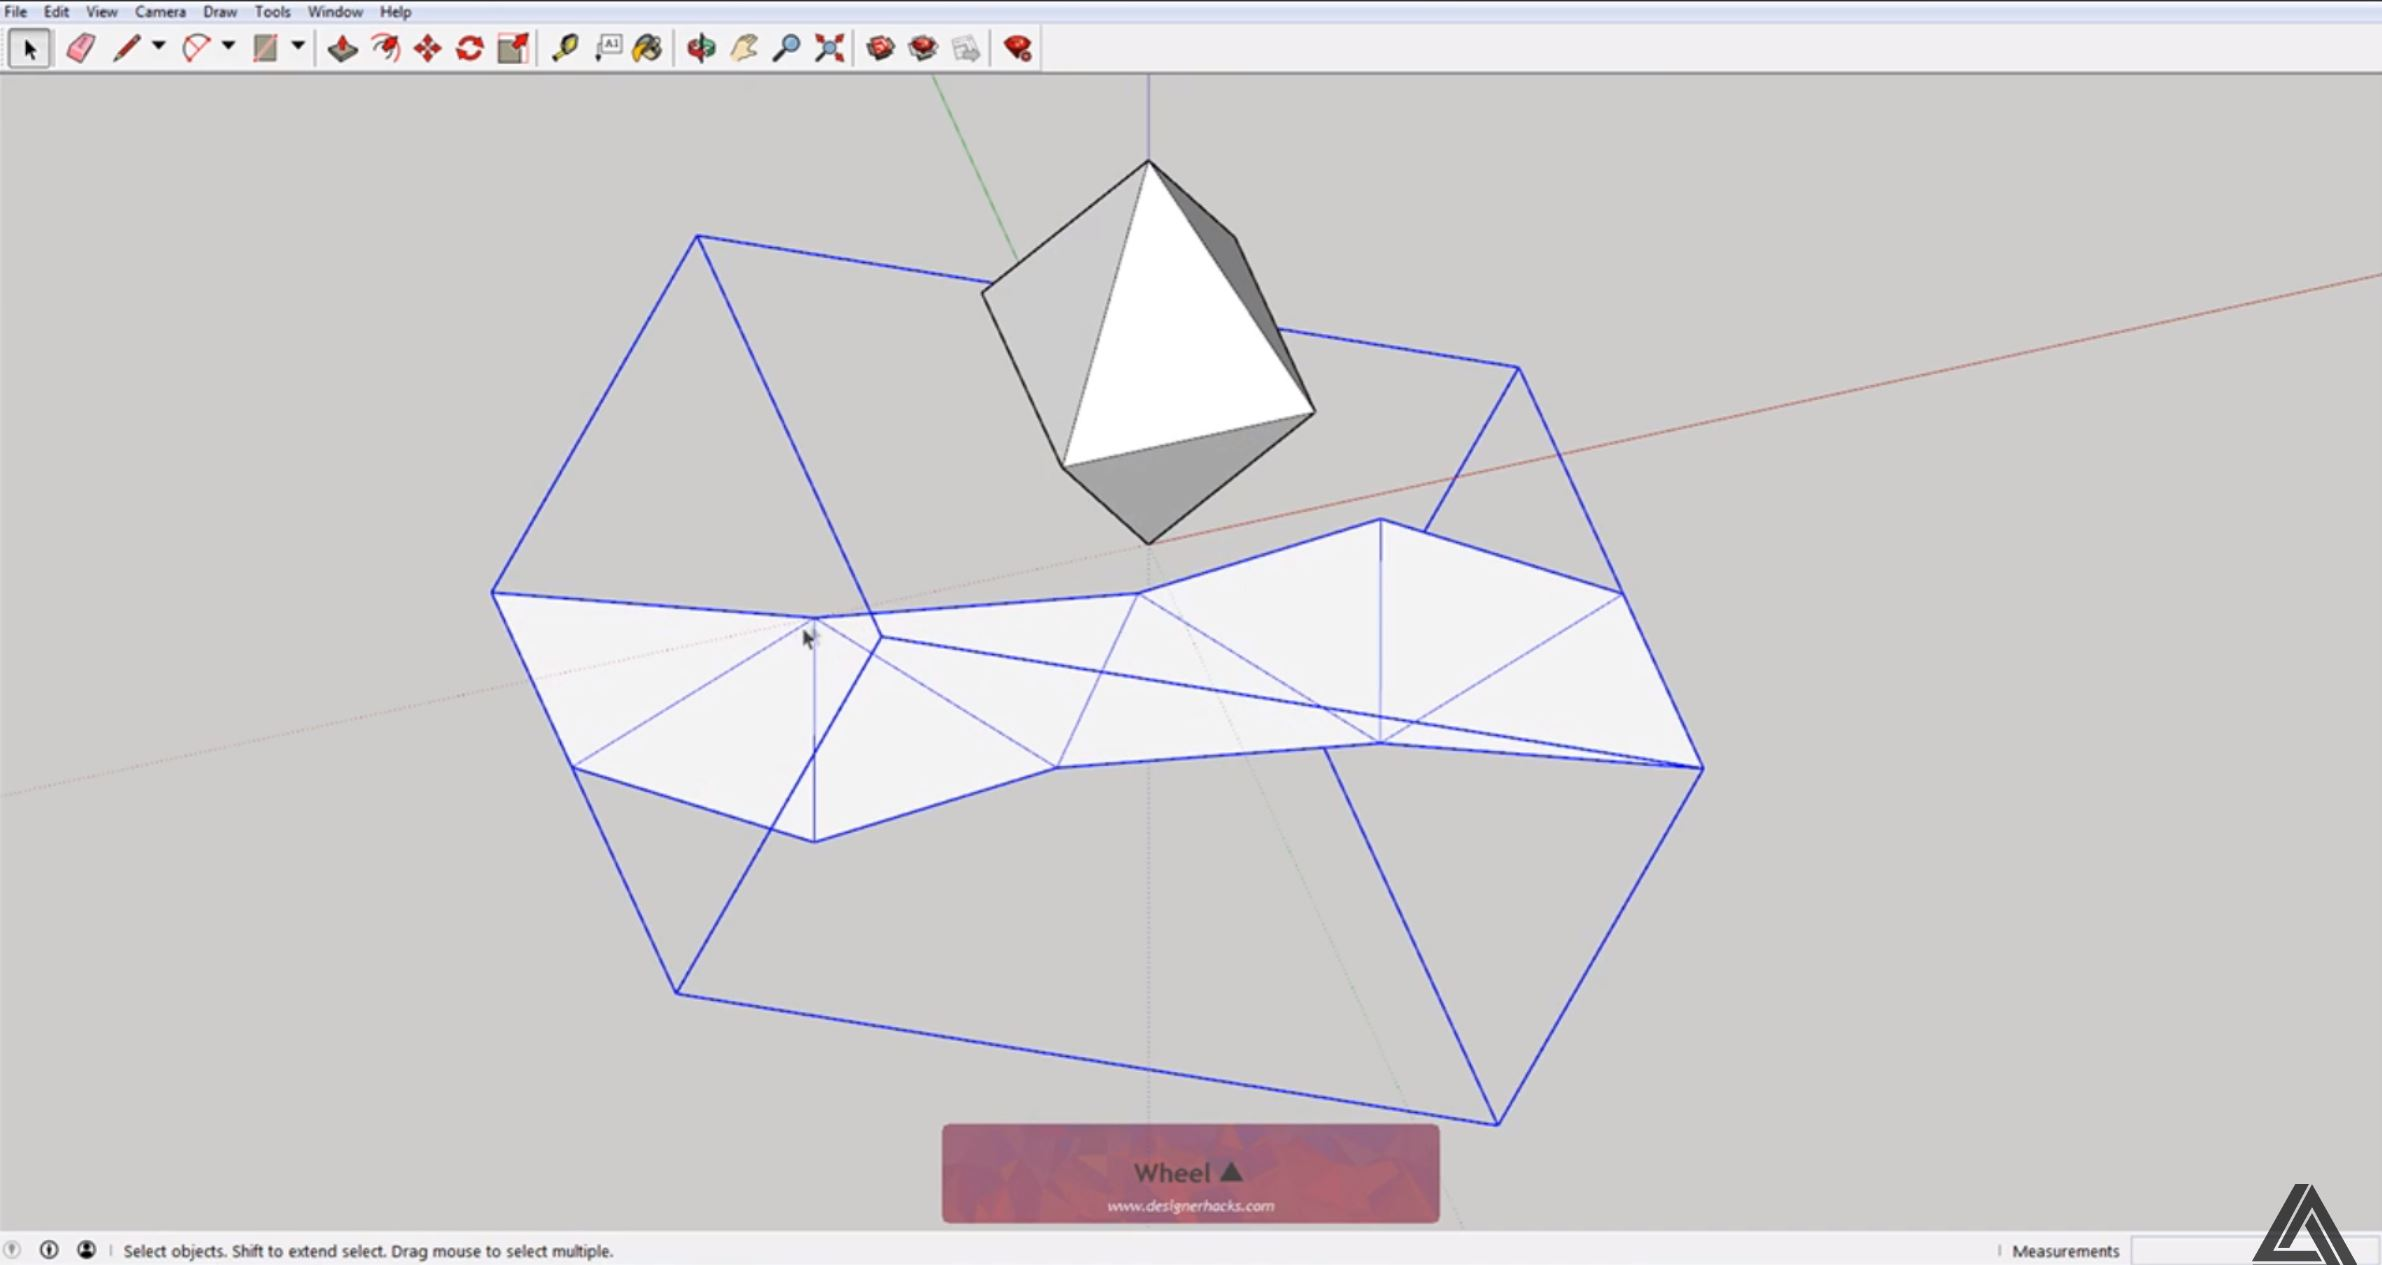 How to Unfold Faces in Sketchup Using the Sketchup Unfold Tool